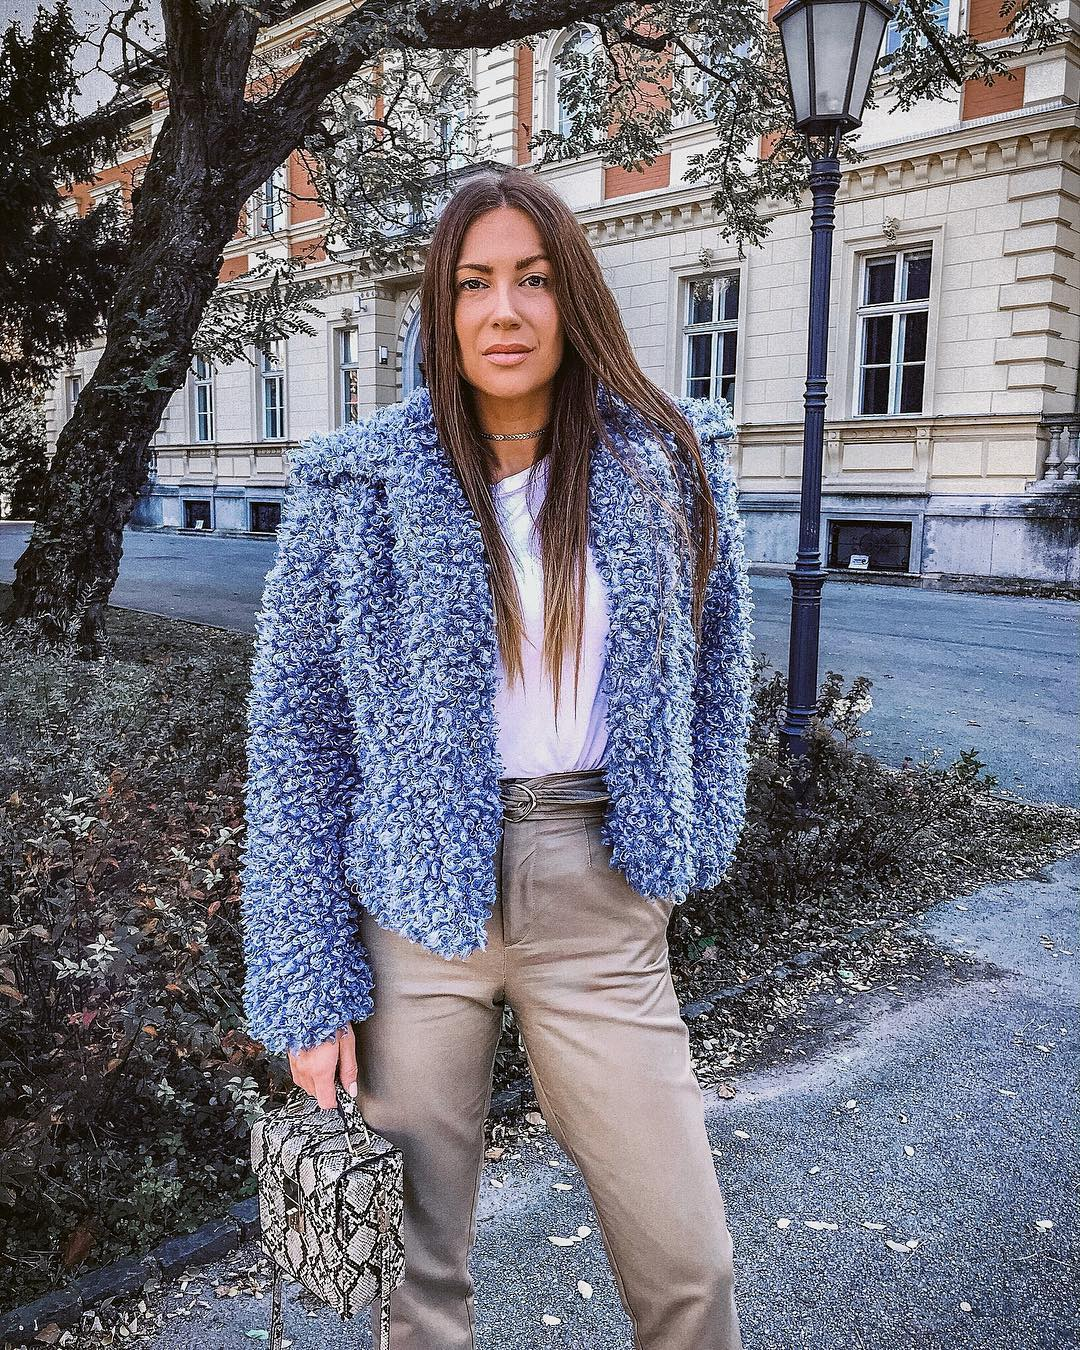 Blue Faux Fur Jacket With White Top And Grey Pants For Fall 2020